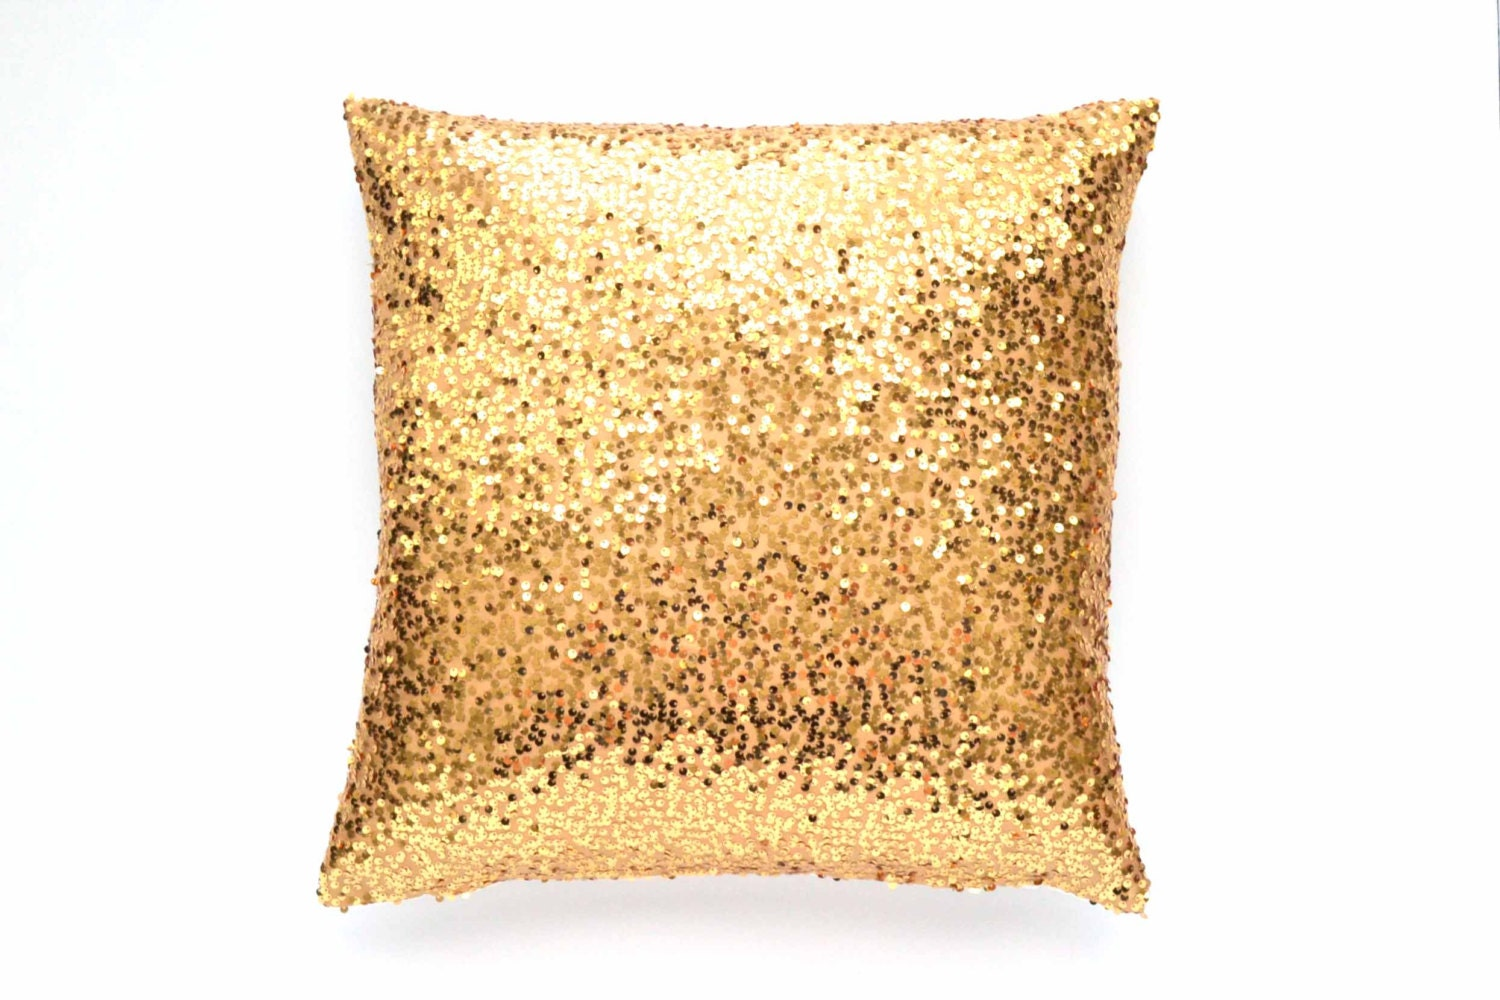 Gold Throw Pillow Cover   Gold Sequin   20 X 20   Decorative Pillow, Gold  Pillow, Sequin Throw Pillow, Pillow Cover